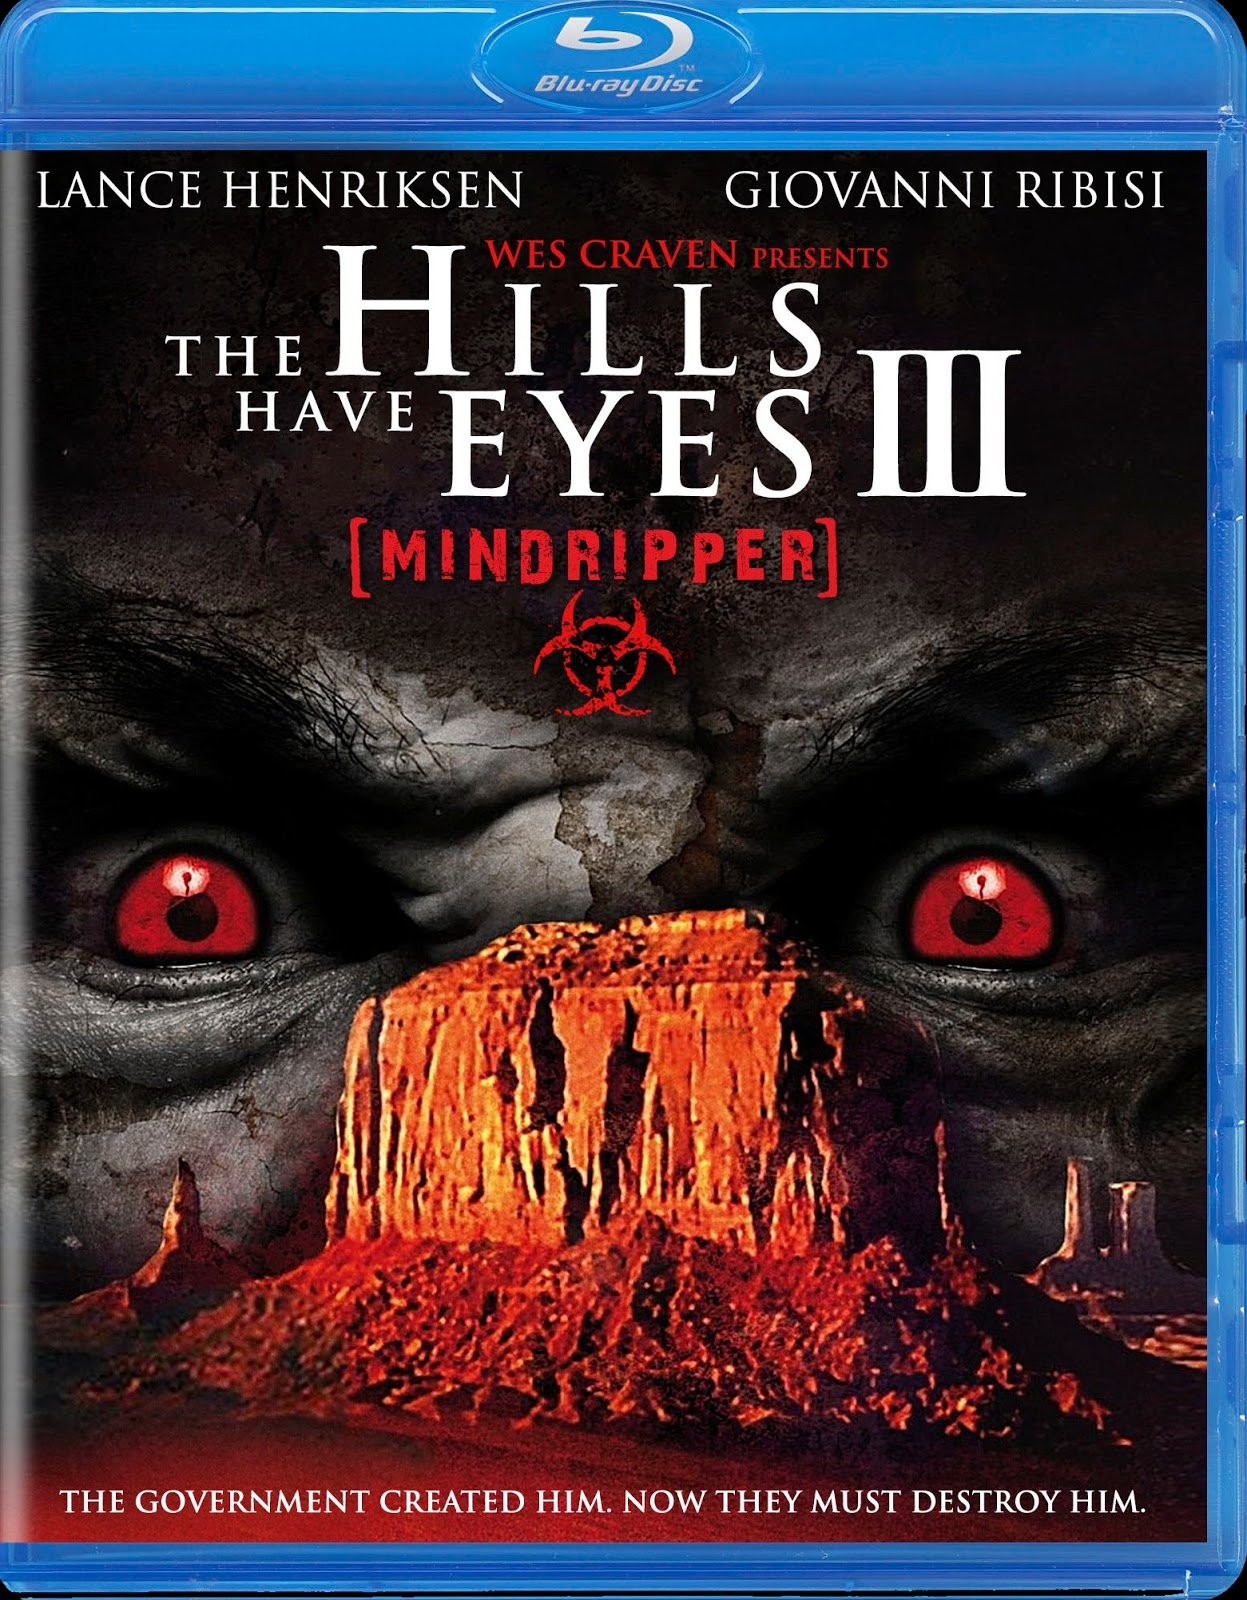 Code Red spies THE HILLS HAVE EYES III (MIND RIPPER ... The Hills Have Eyes 4